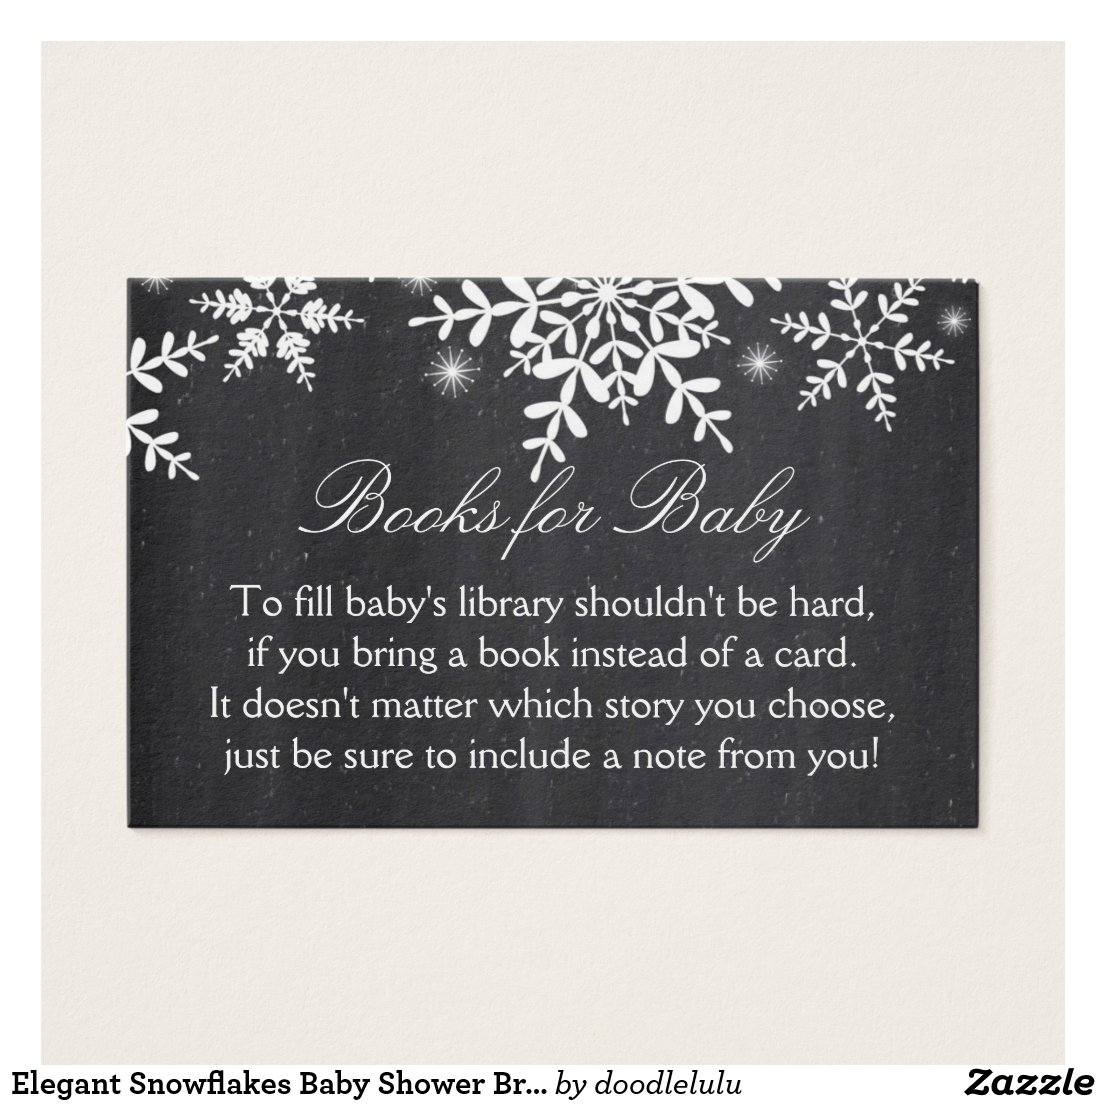 Elegant Snowflakes Baby Shower Bring a Book Card